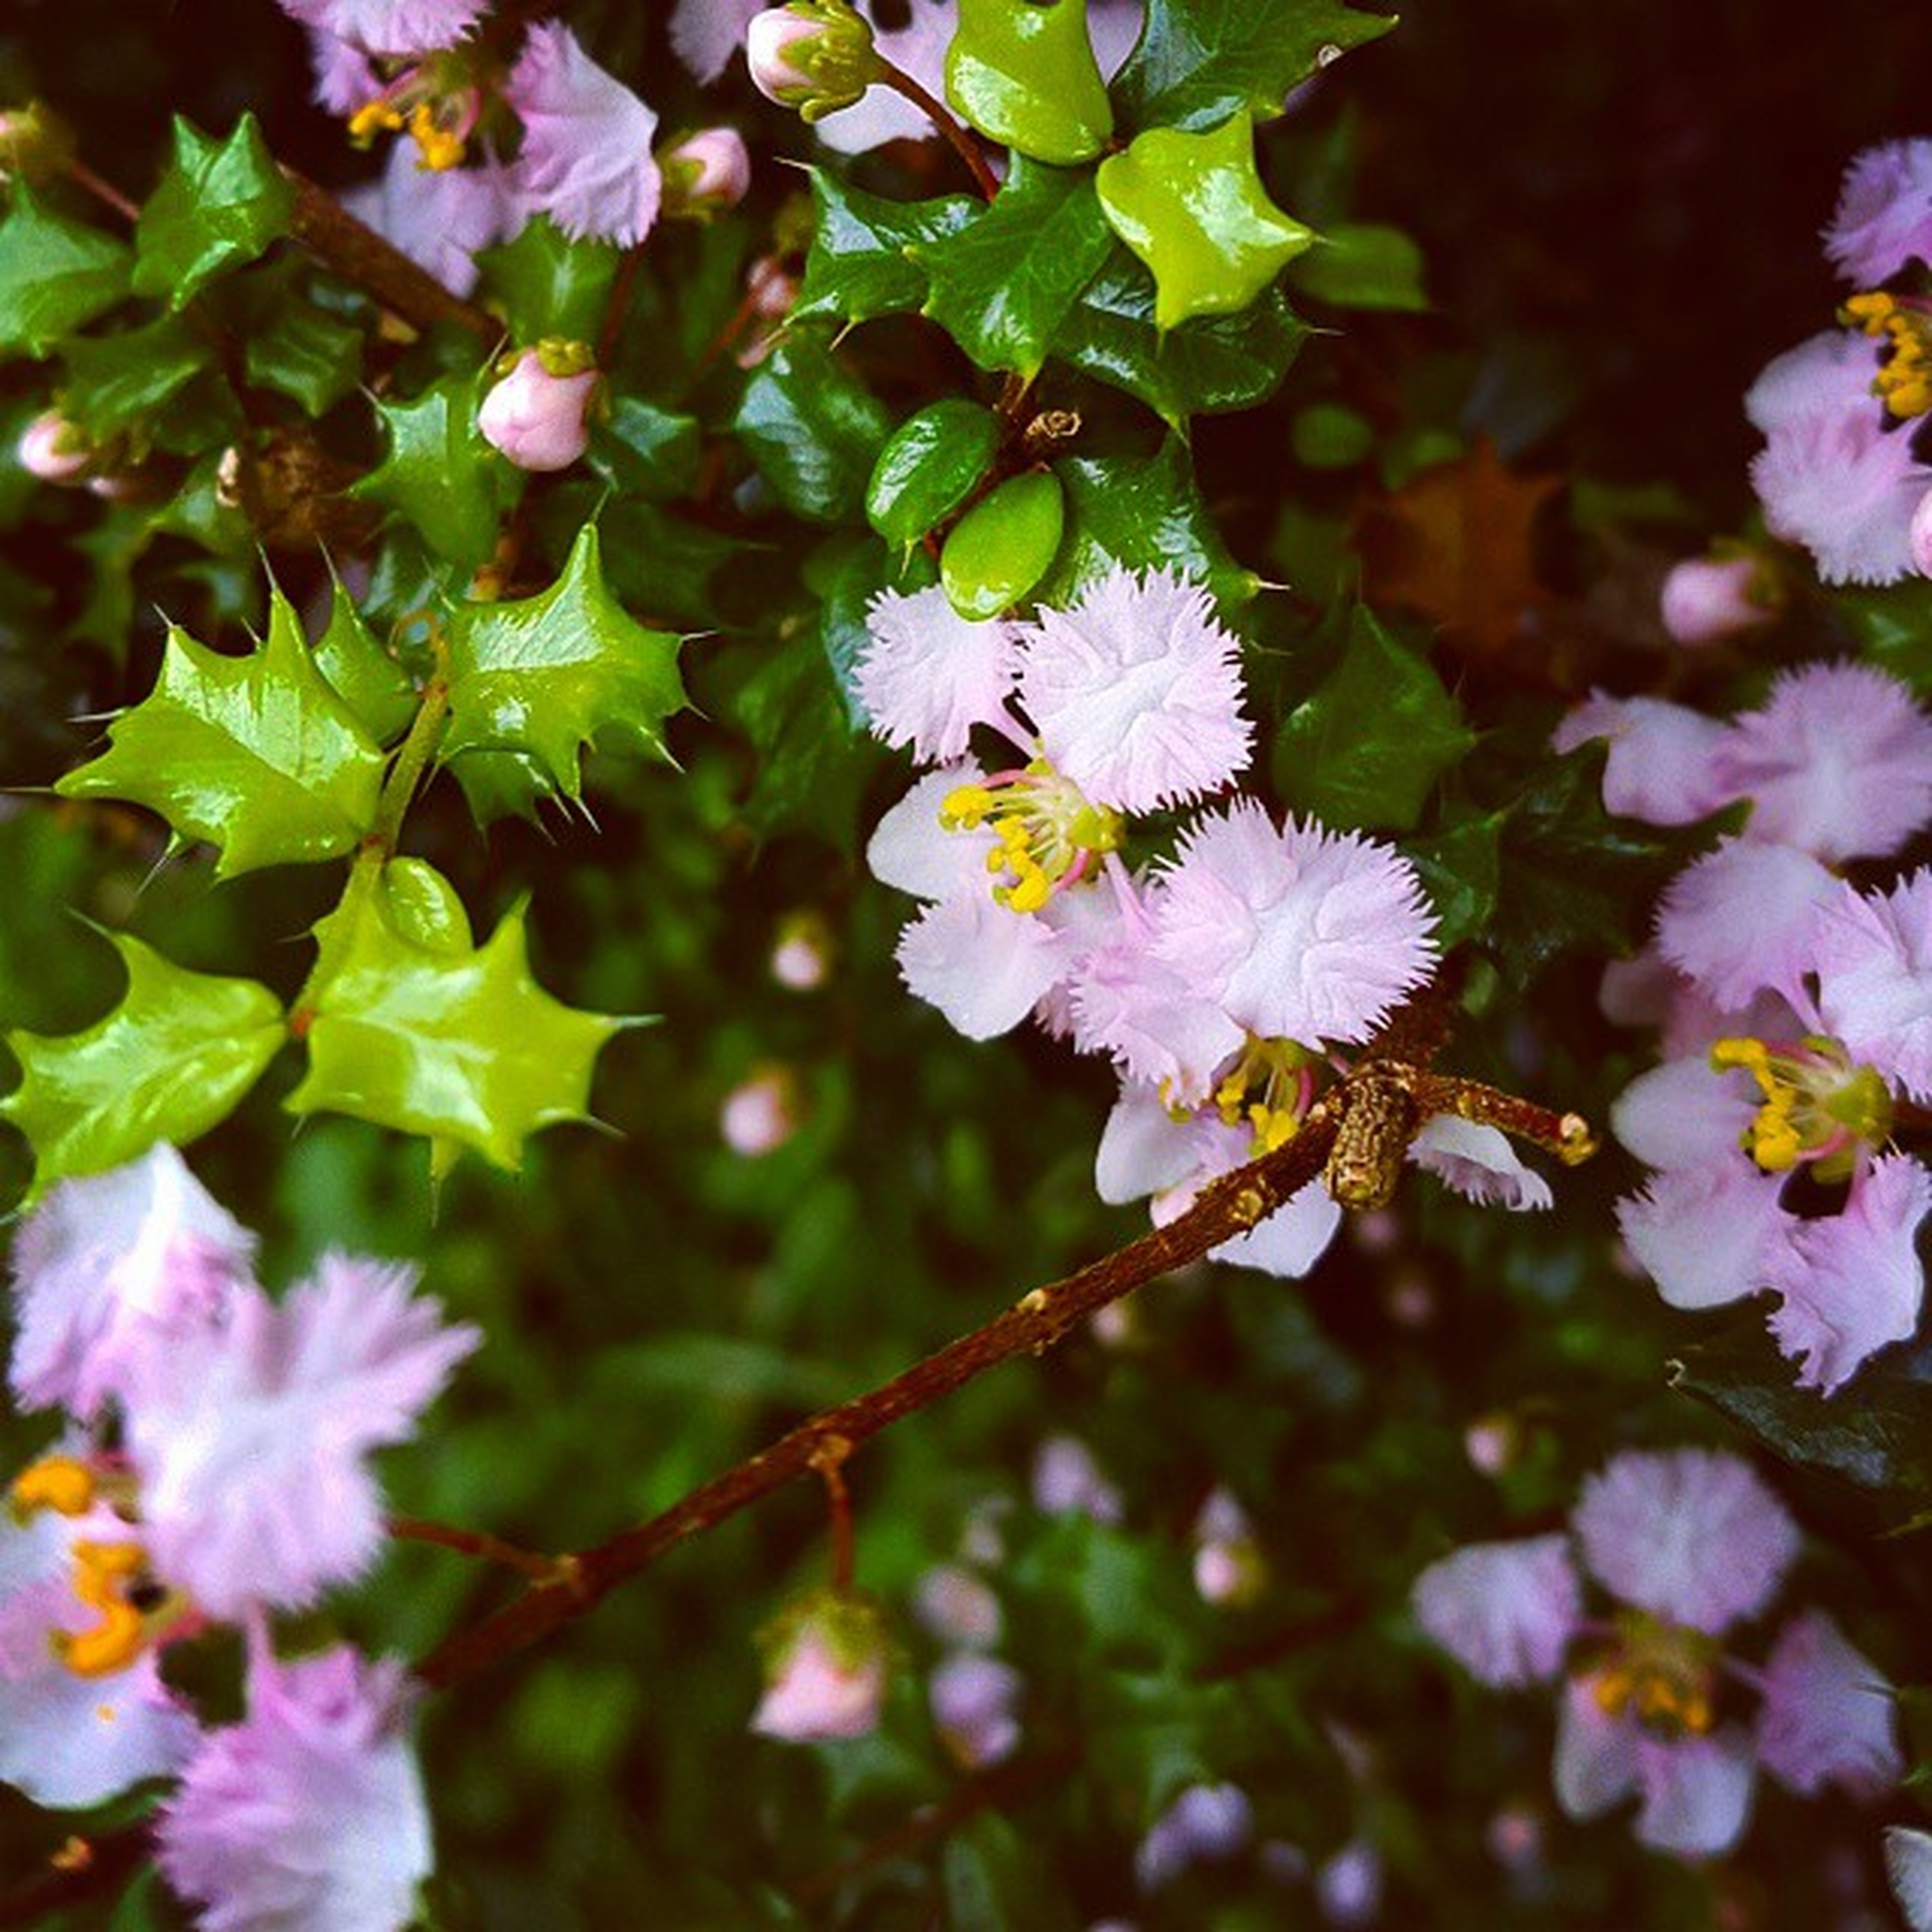 flower, freshness, fragility, growth, beauty in nature, petal, nature, focus on foreground, purple, blooming, close-up, flower head, branch, blossom, in bloom, plant, stem, outdoors, tree, springtime